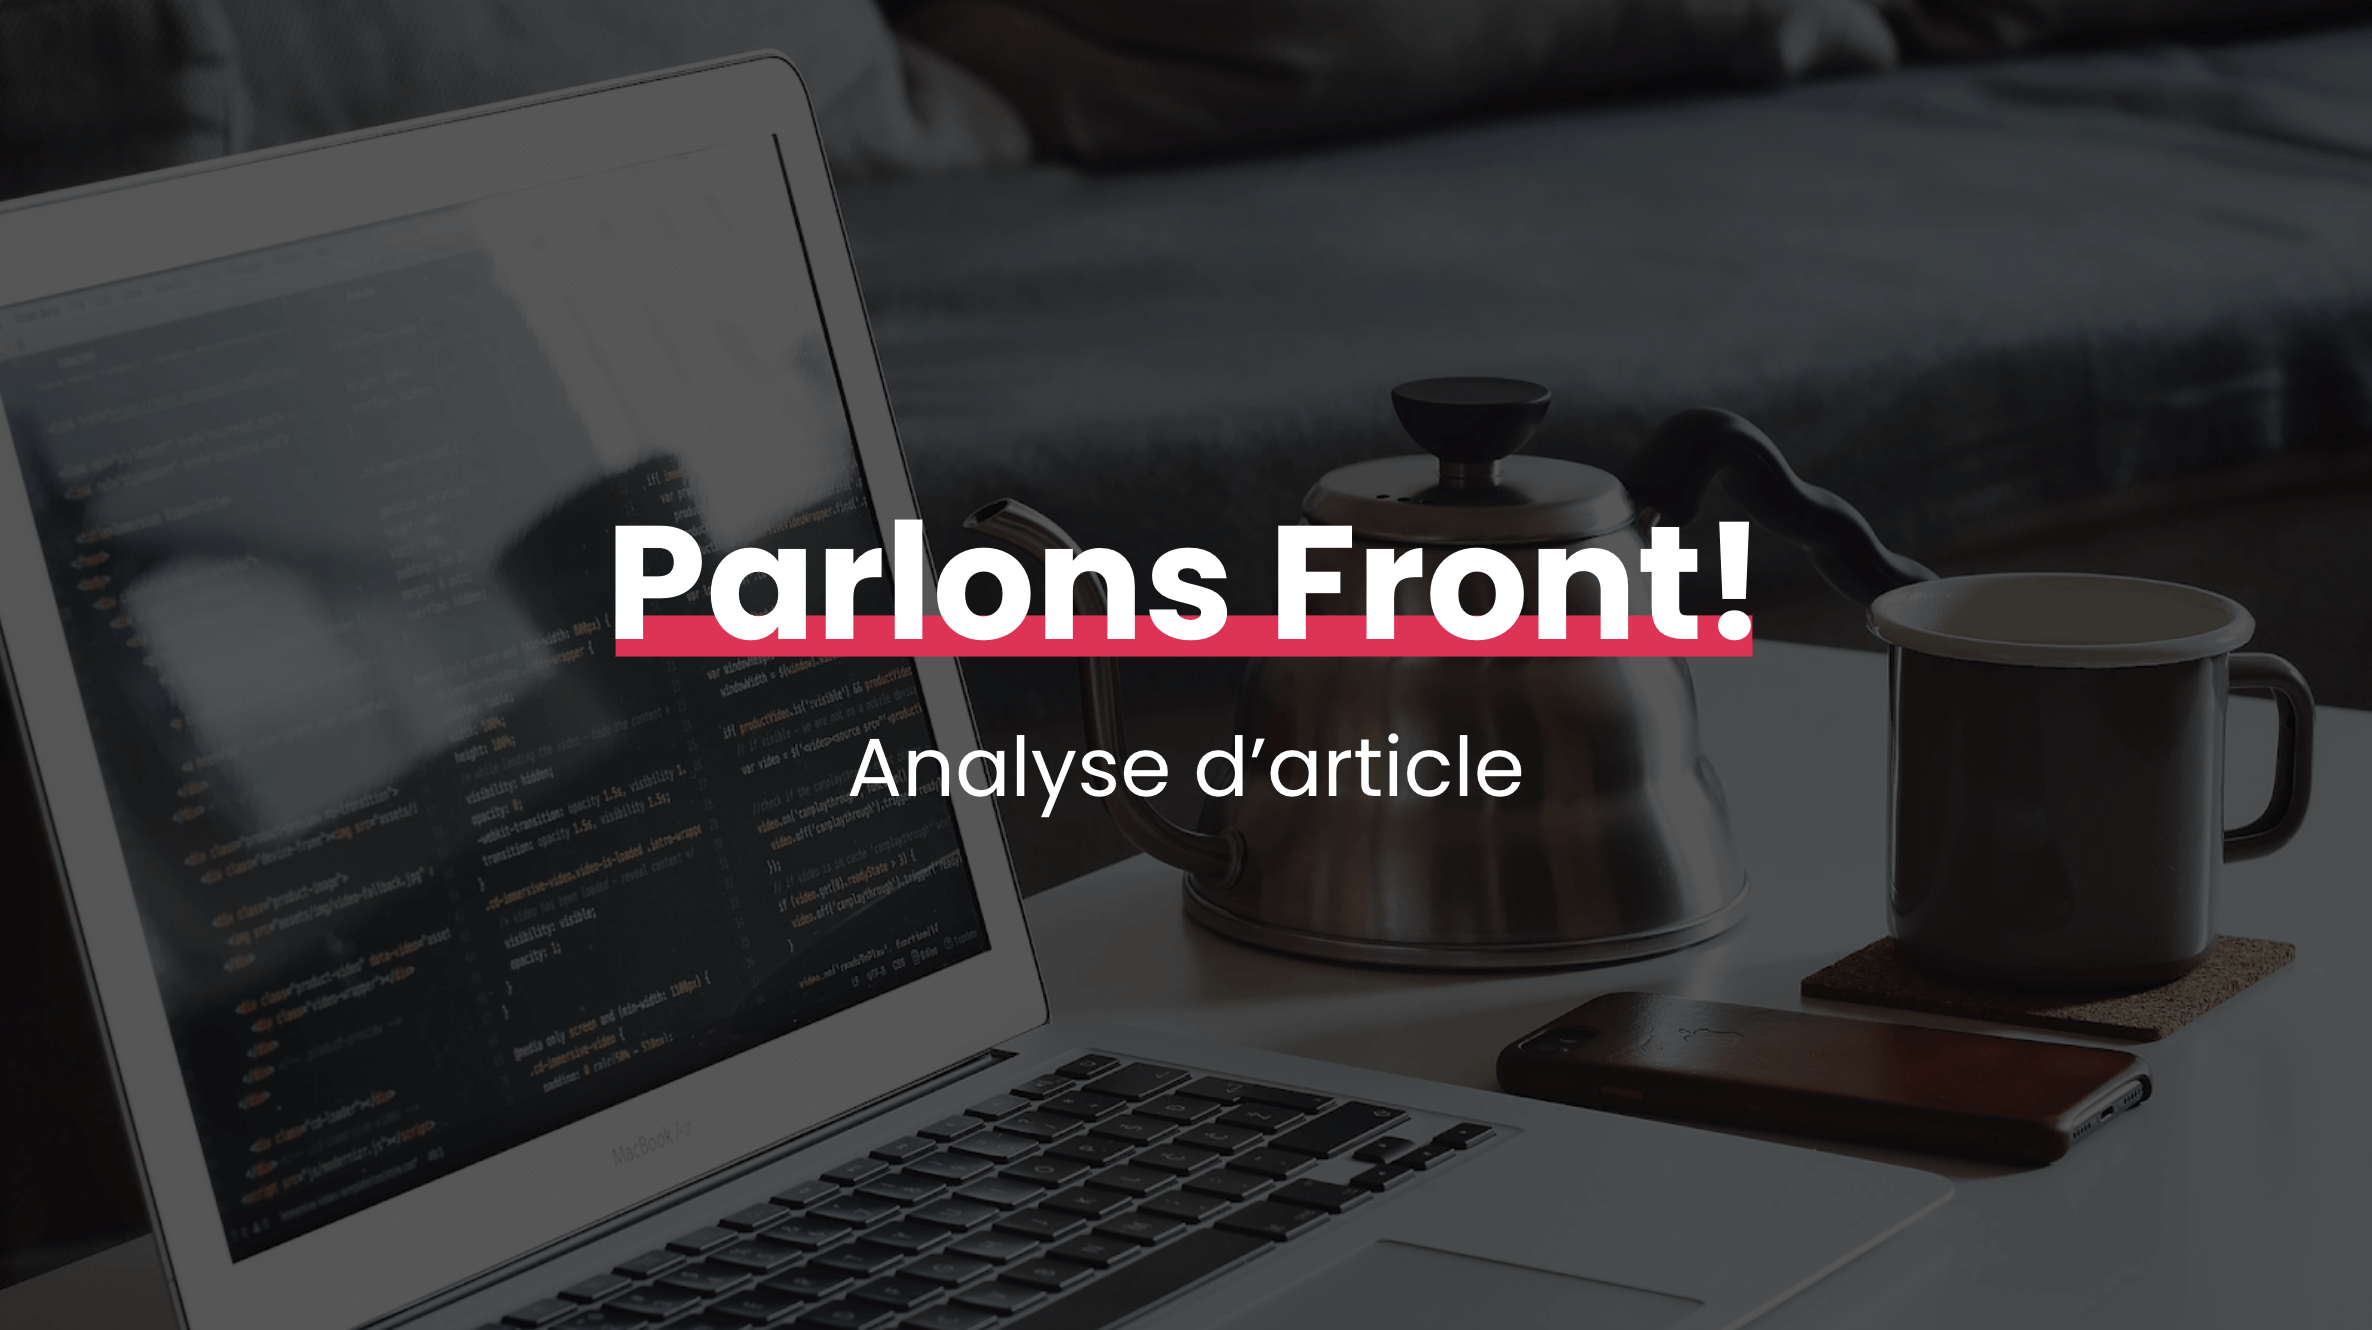 Parlons Front! Analyse d'article